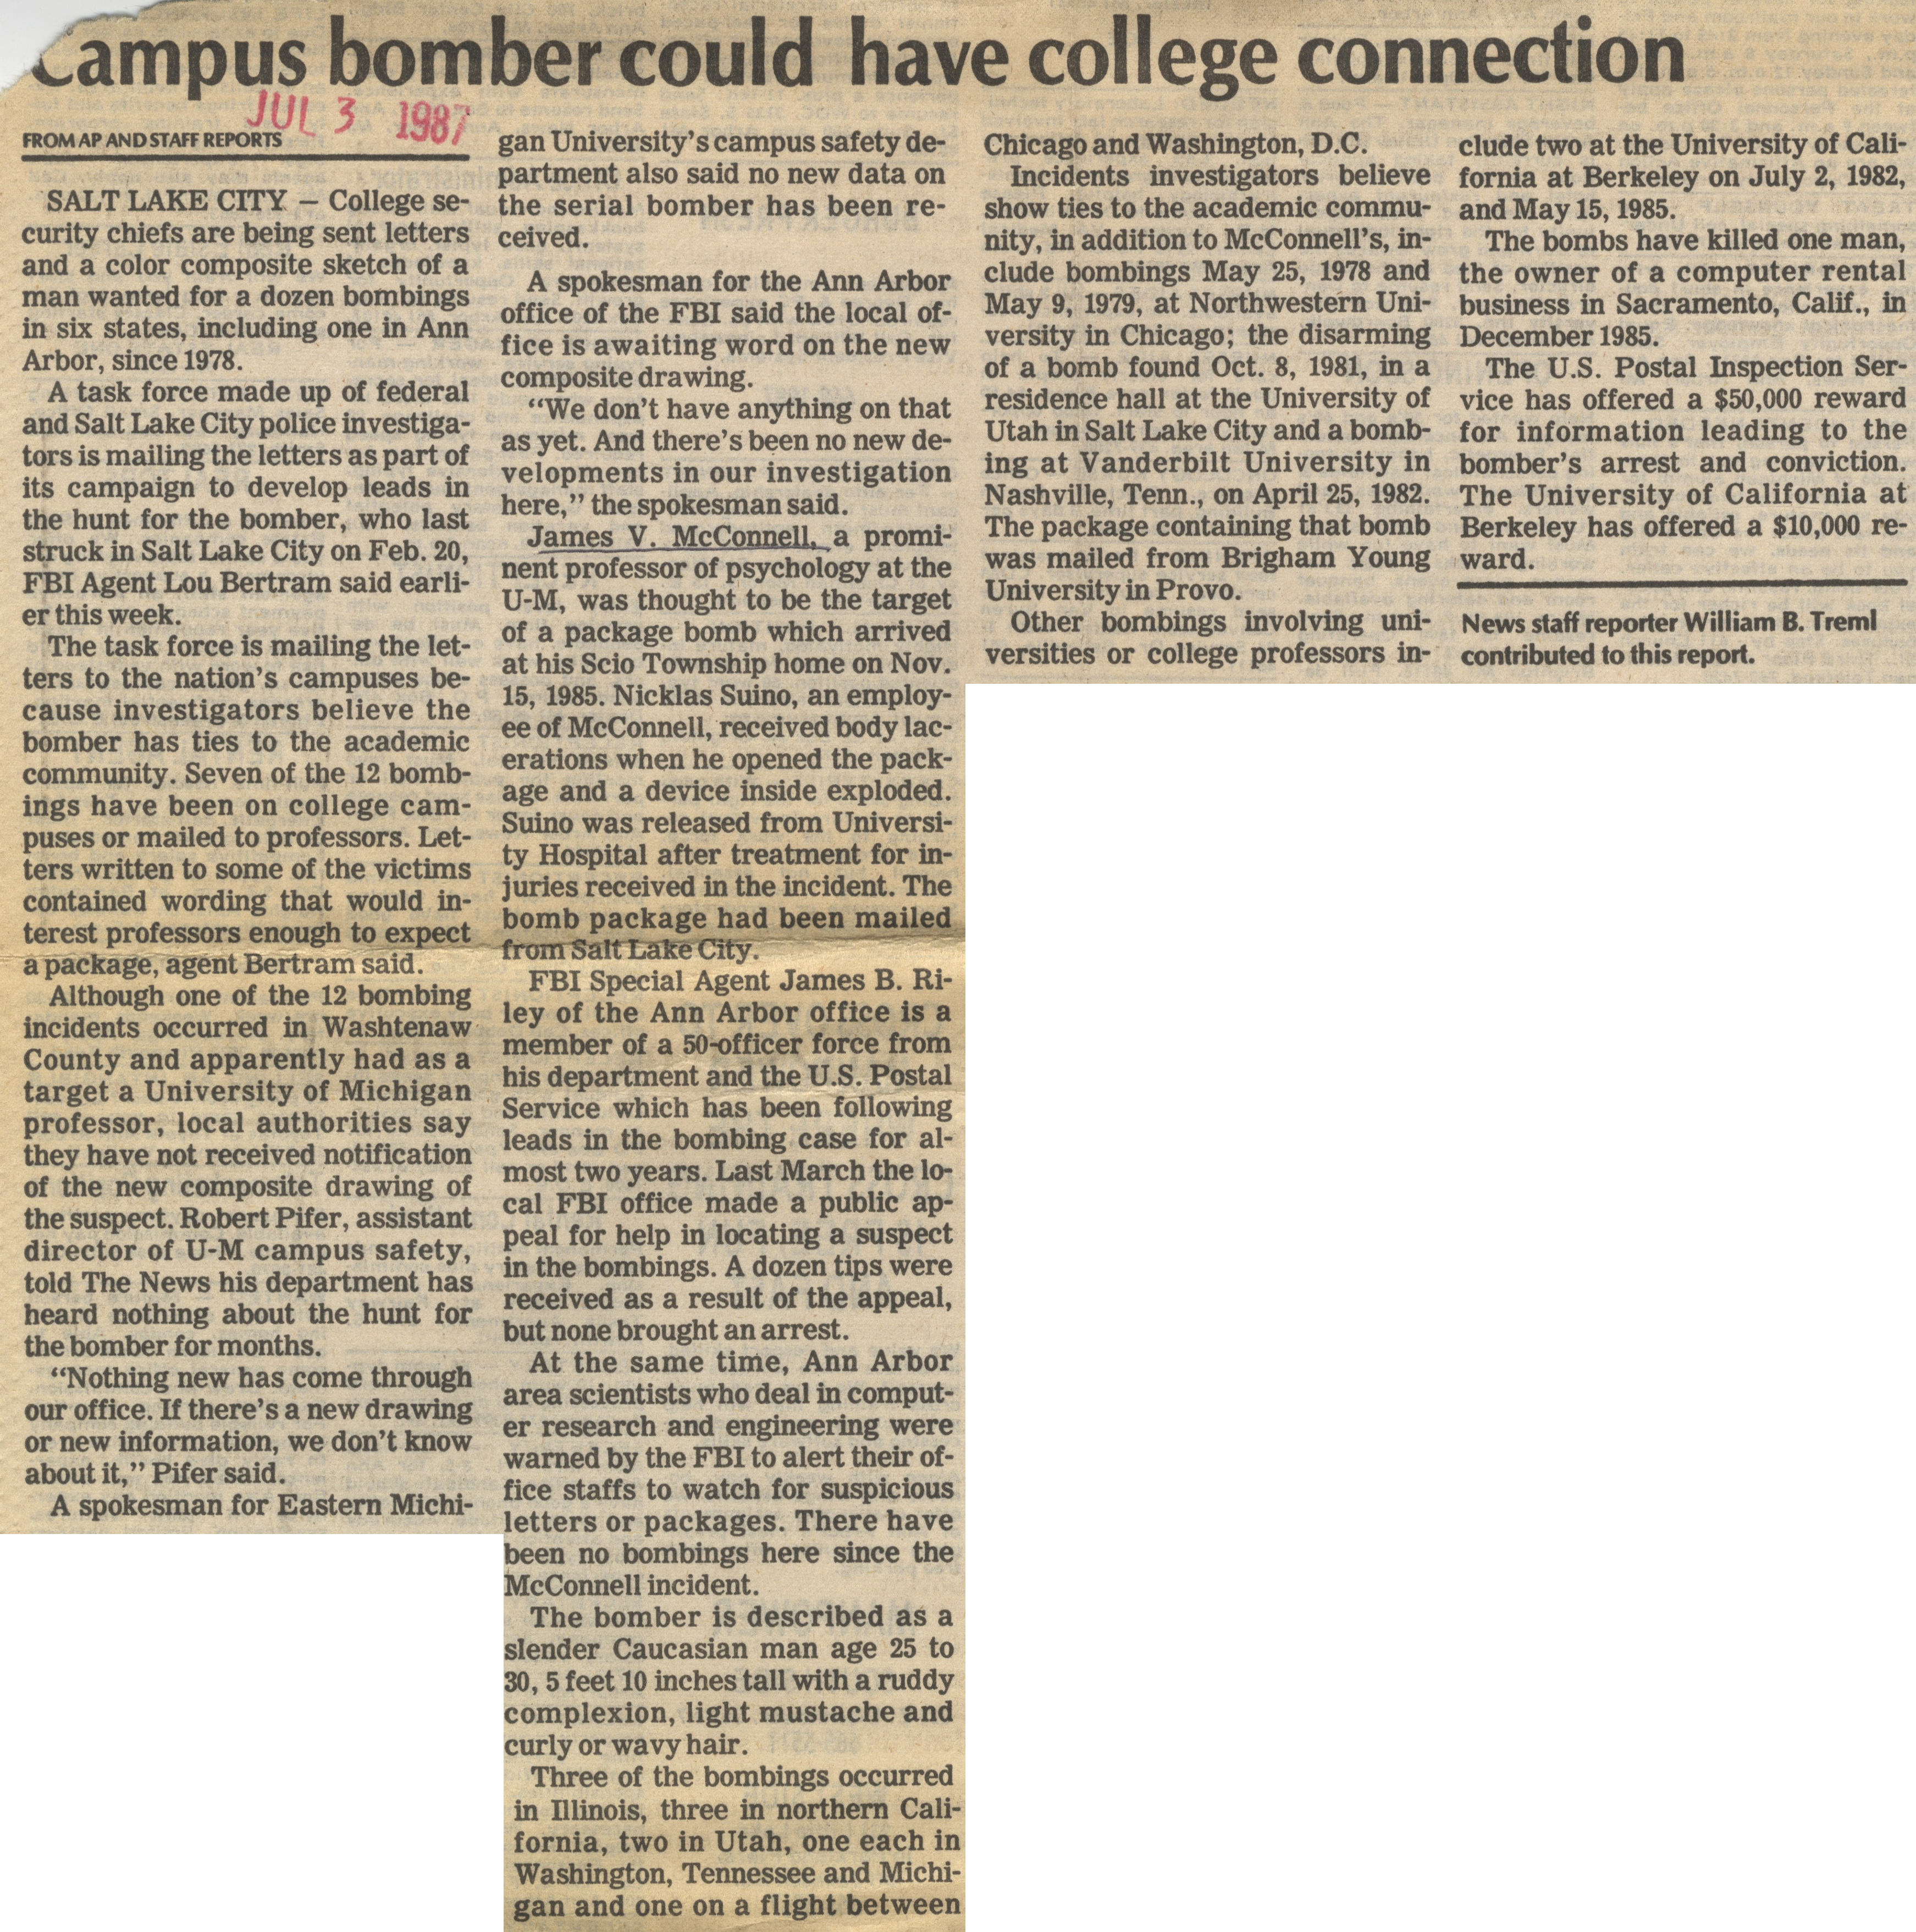 Campus Bomber Could Have College Connection image